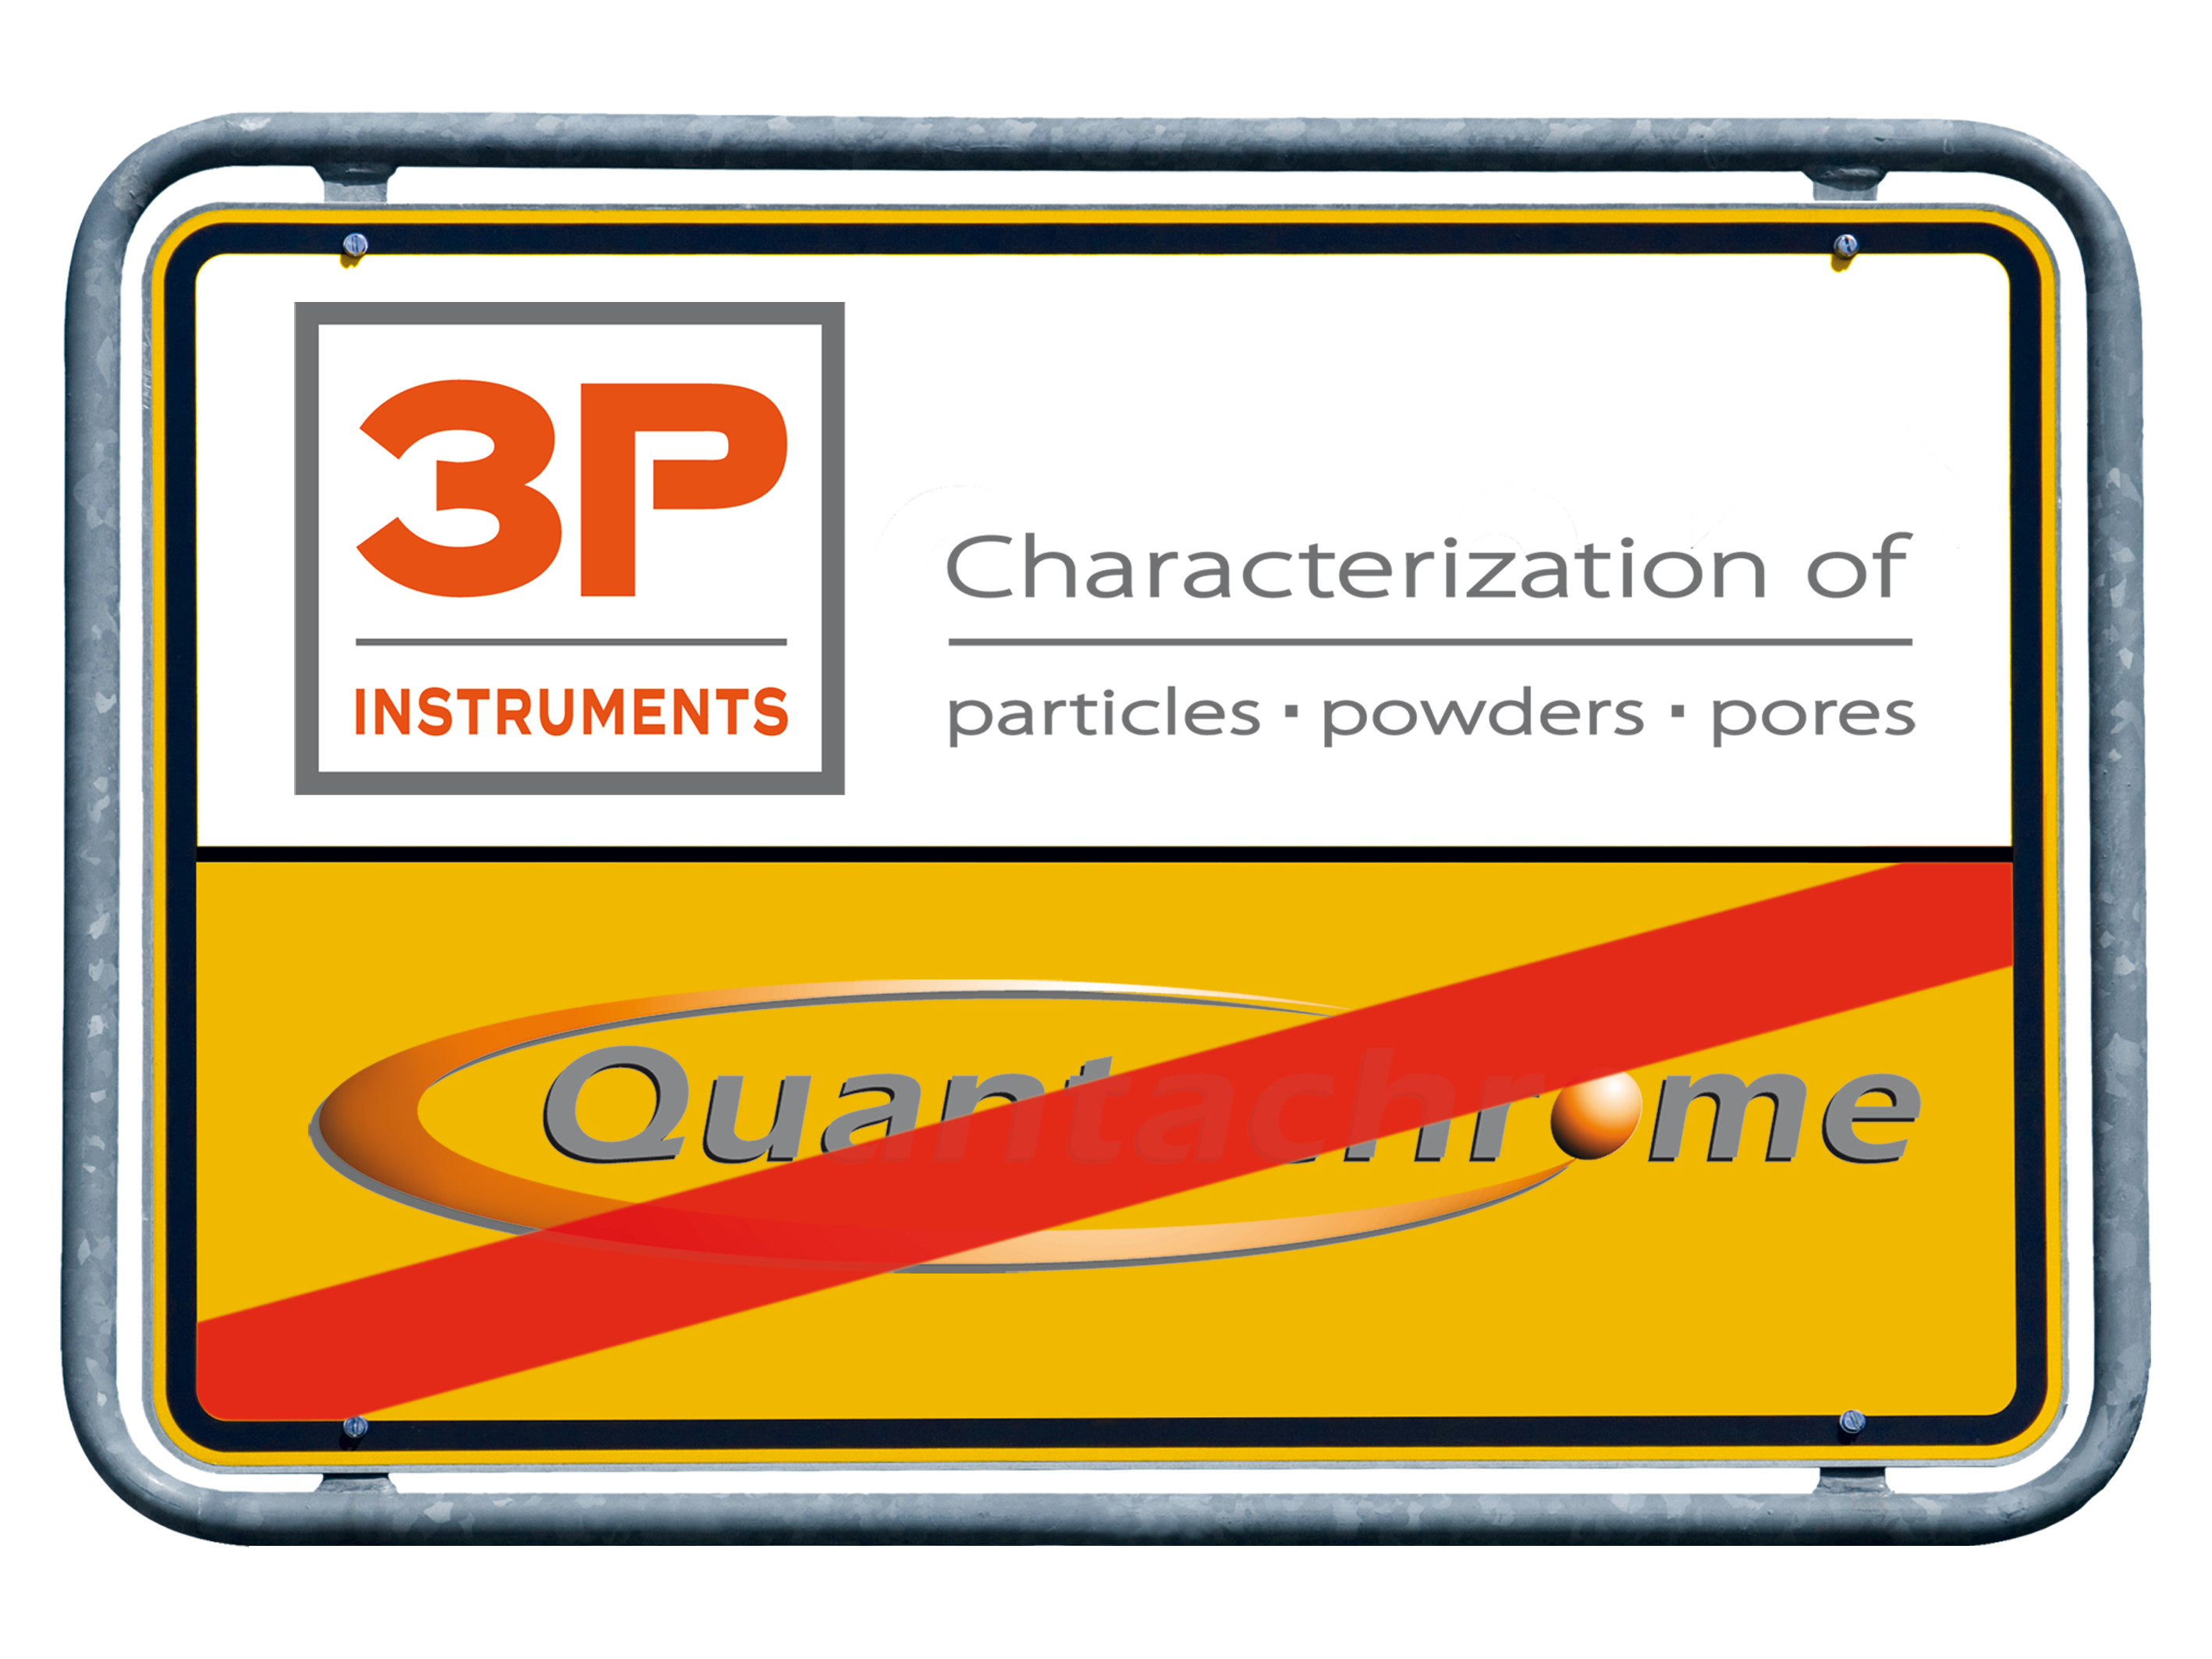 QUANTACHROME GmbH & Co. KG turns into 3P INSTRUMENTS